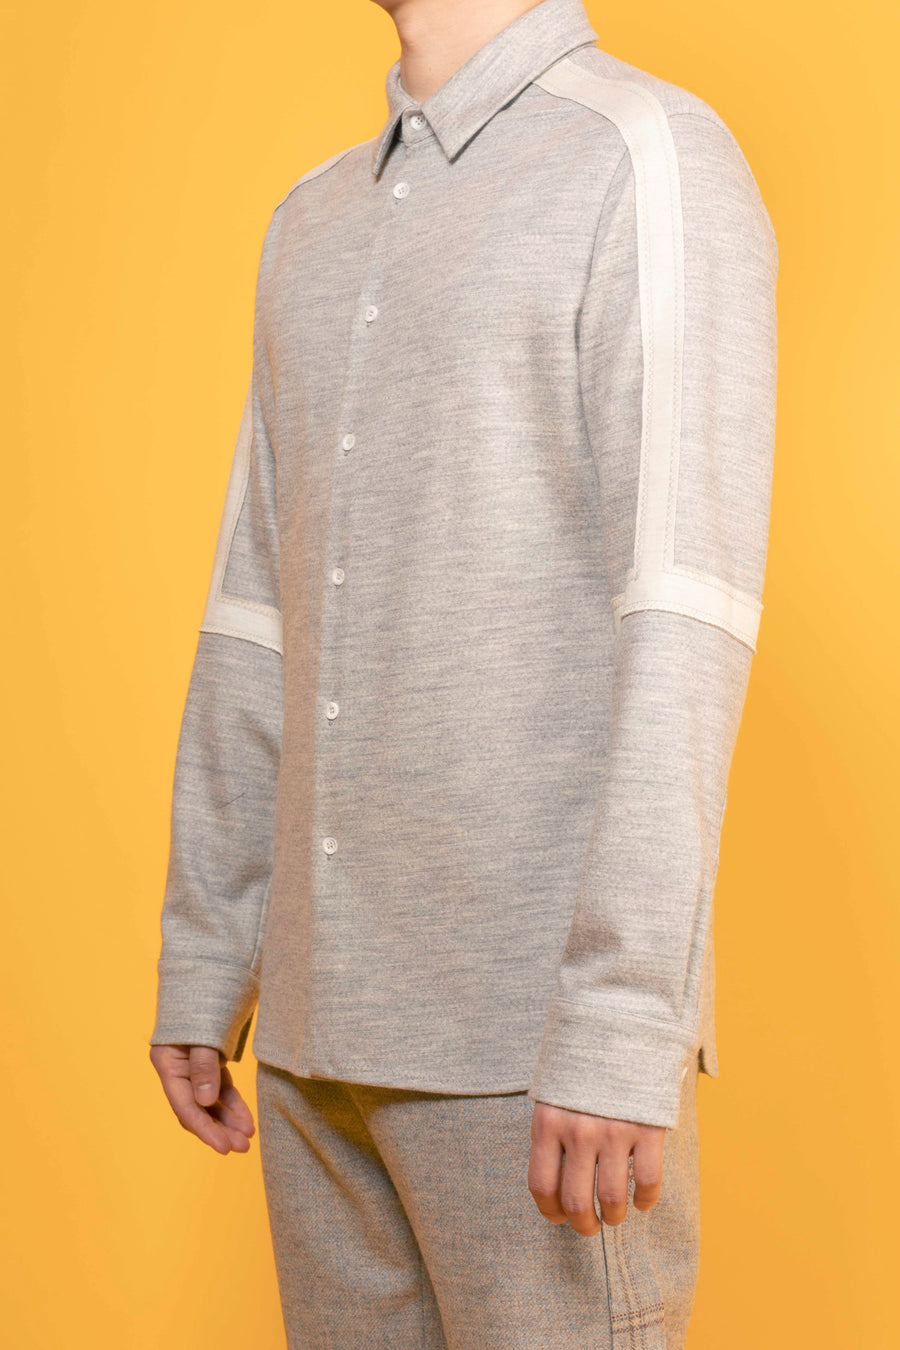 SPIKE– WOOL JERSEY SHIRT